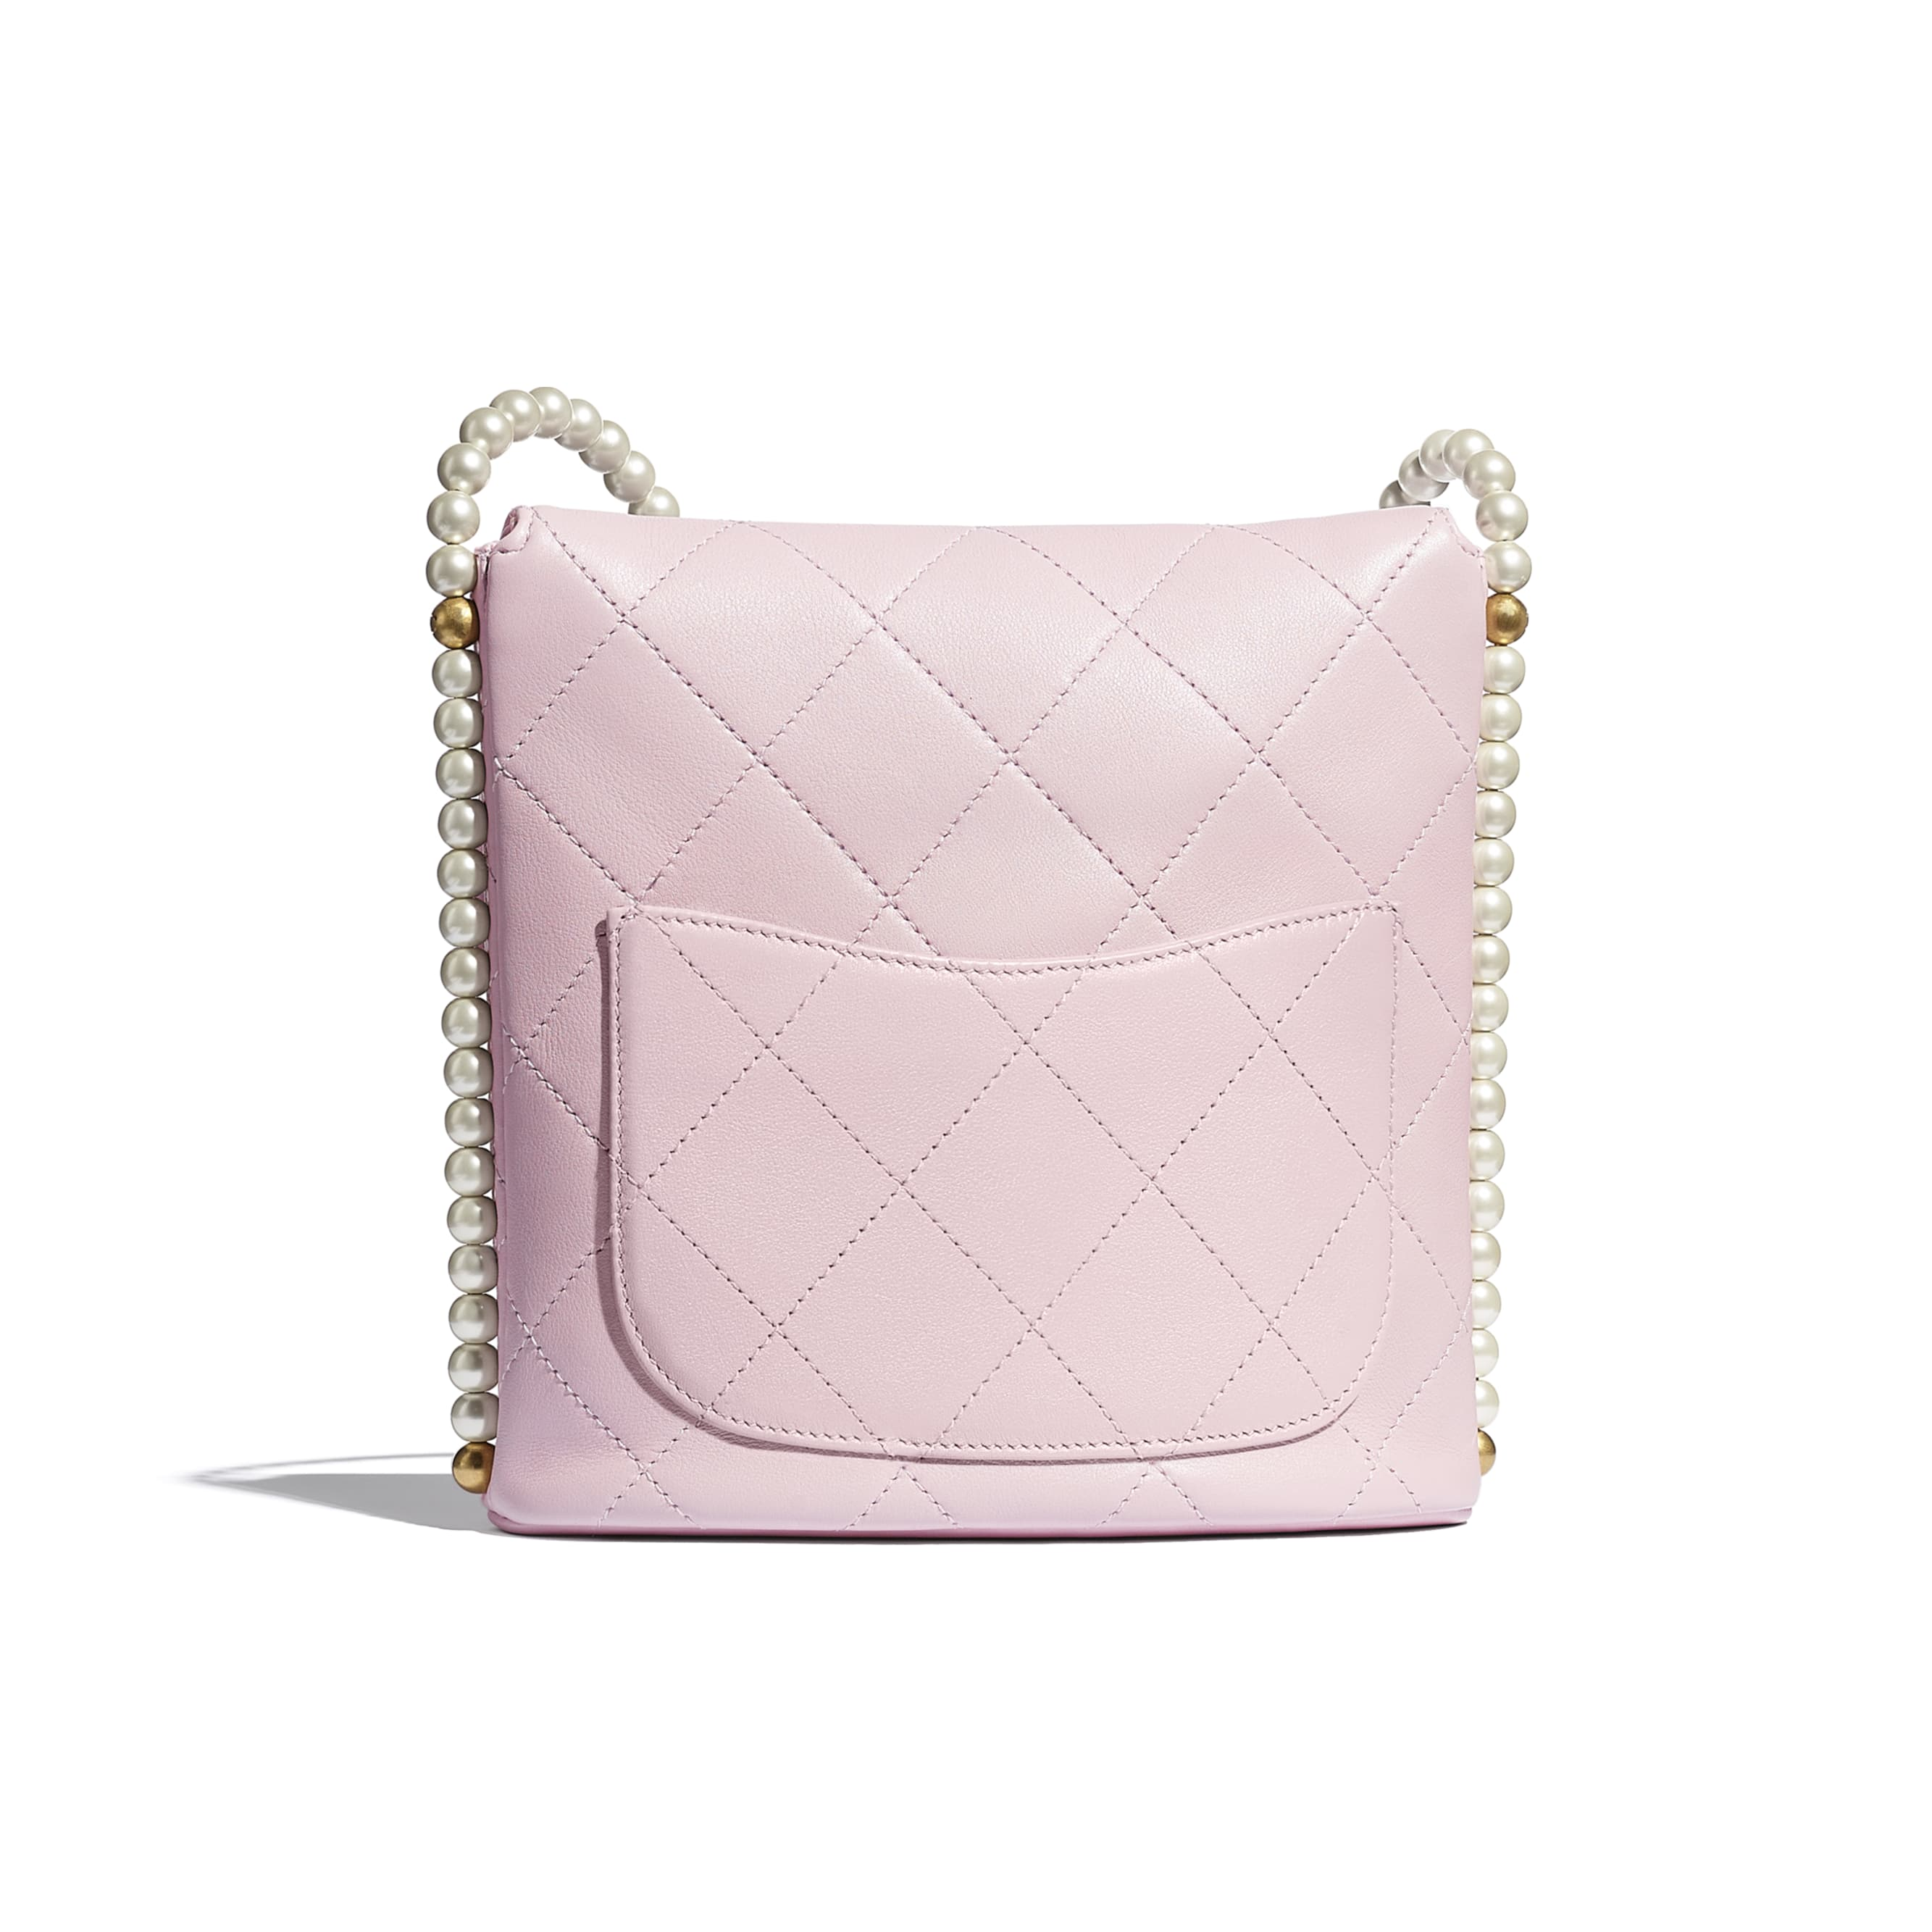 Small Hobo Bag - Light Pink - Calfskin, Imitation Pearls & Gold-Tone Metal - CHANEL - Alternative view - see standard sized version